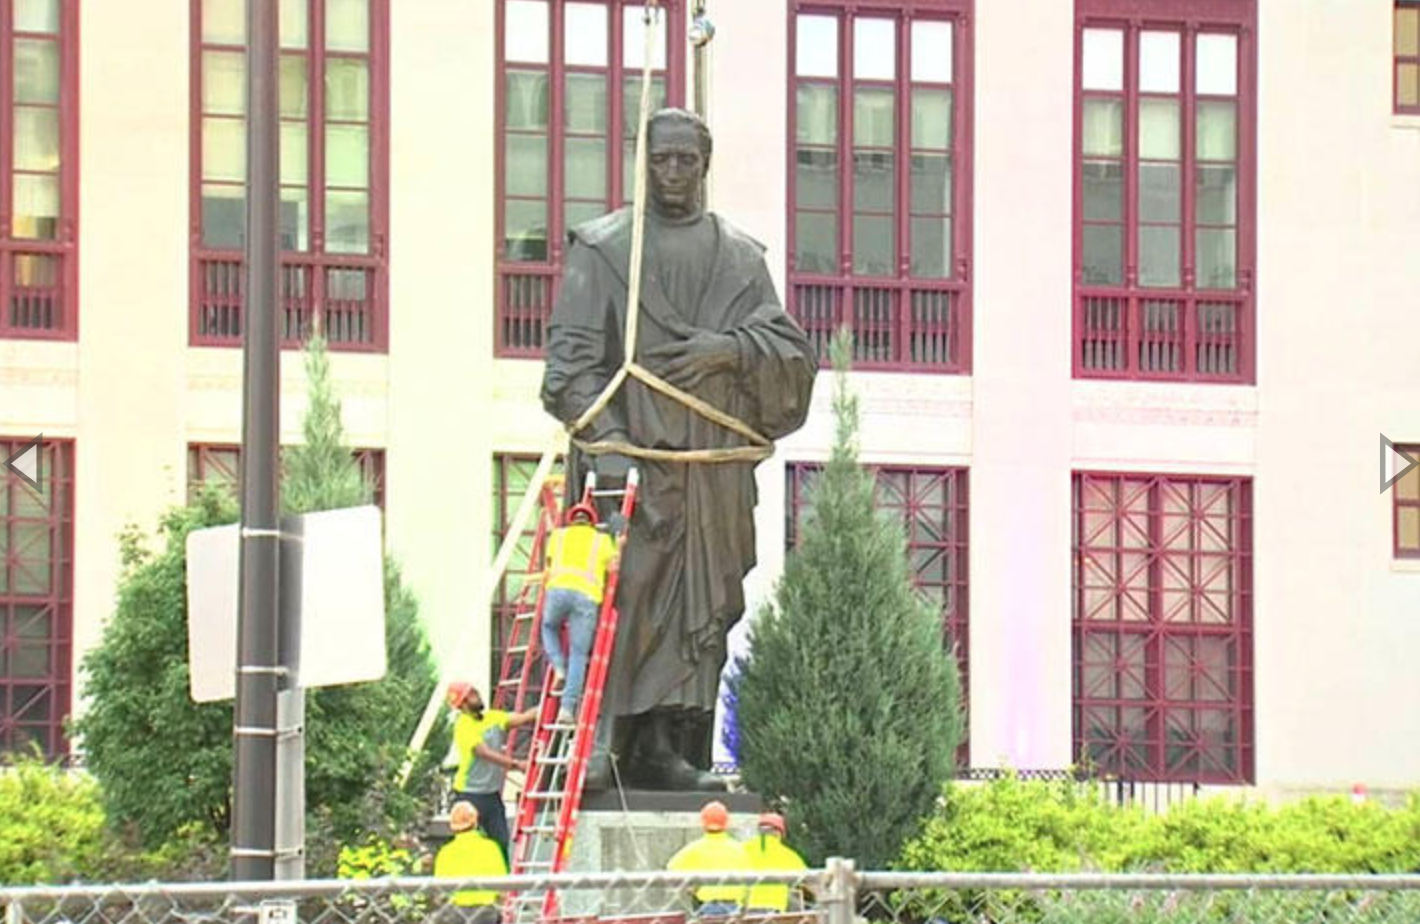 The Christopher Columbus Statue being removed on Wednesday, July 1, 2020.